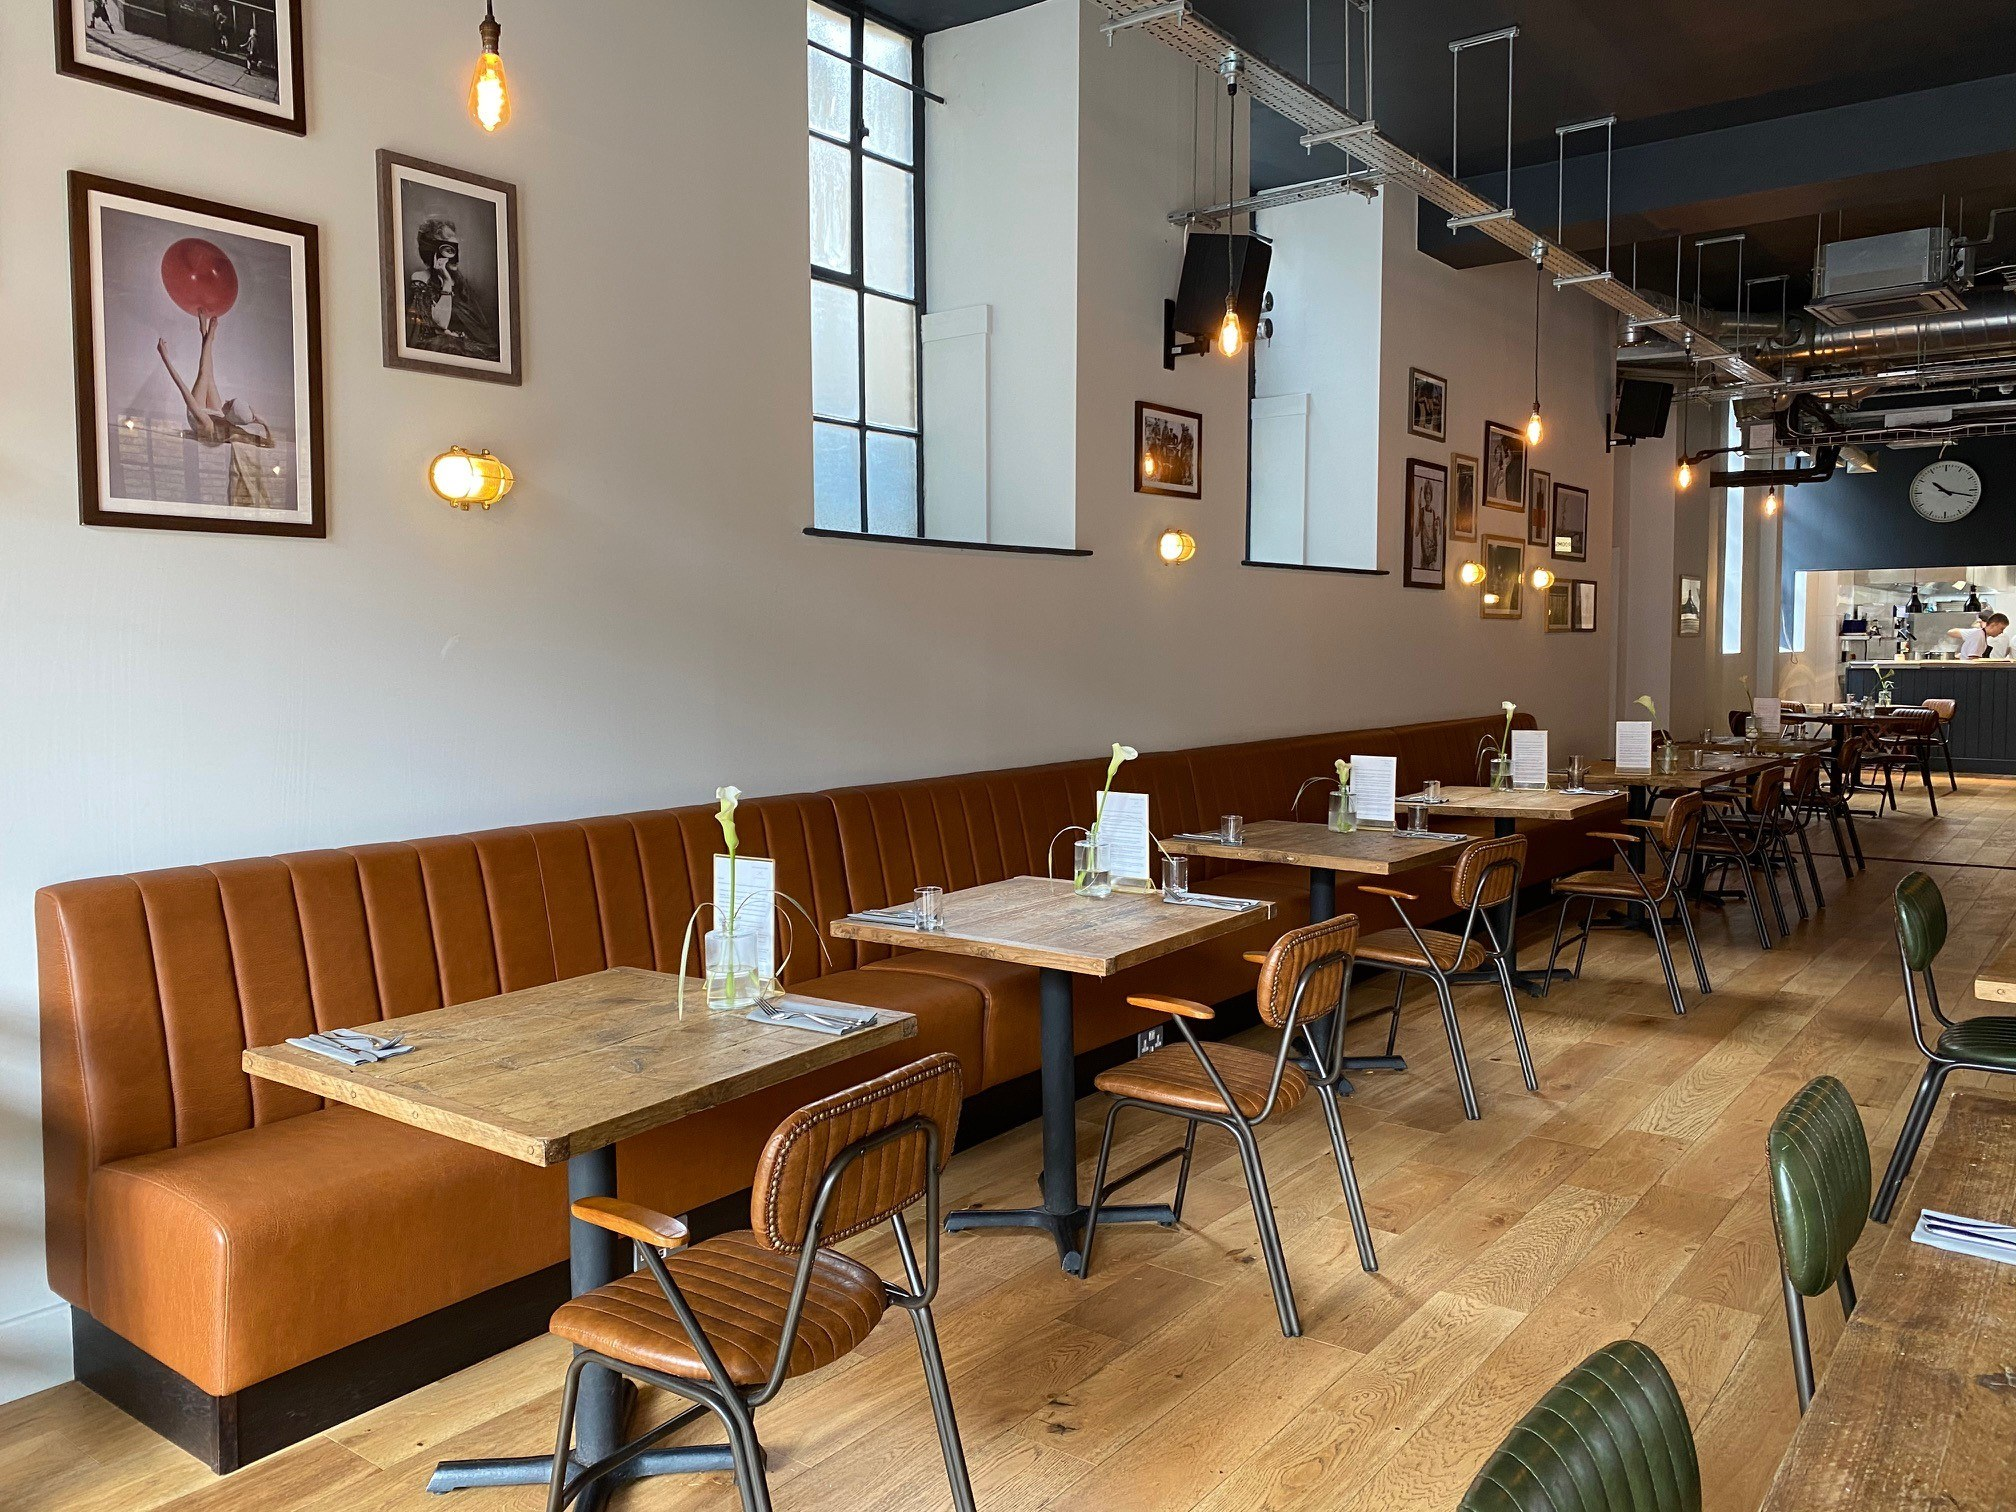 Leather Bench Cafe Seating | Craftwood